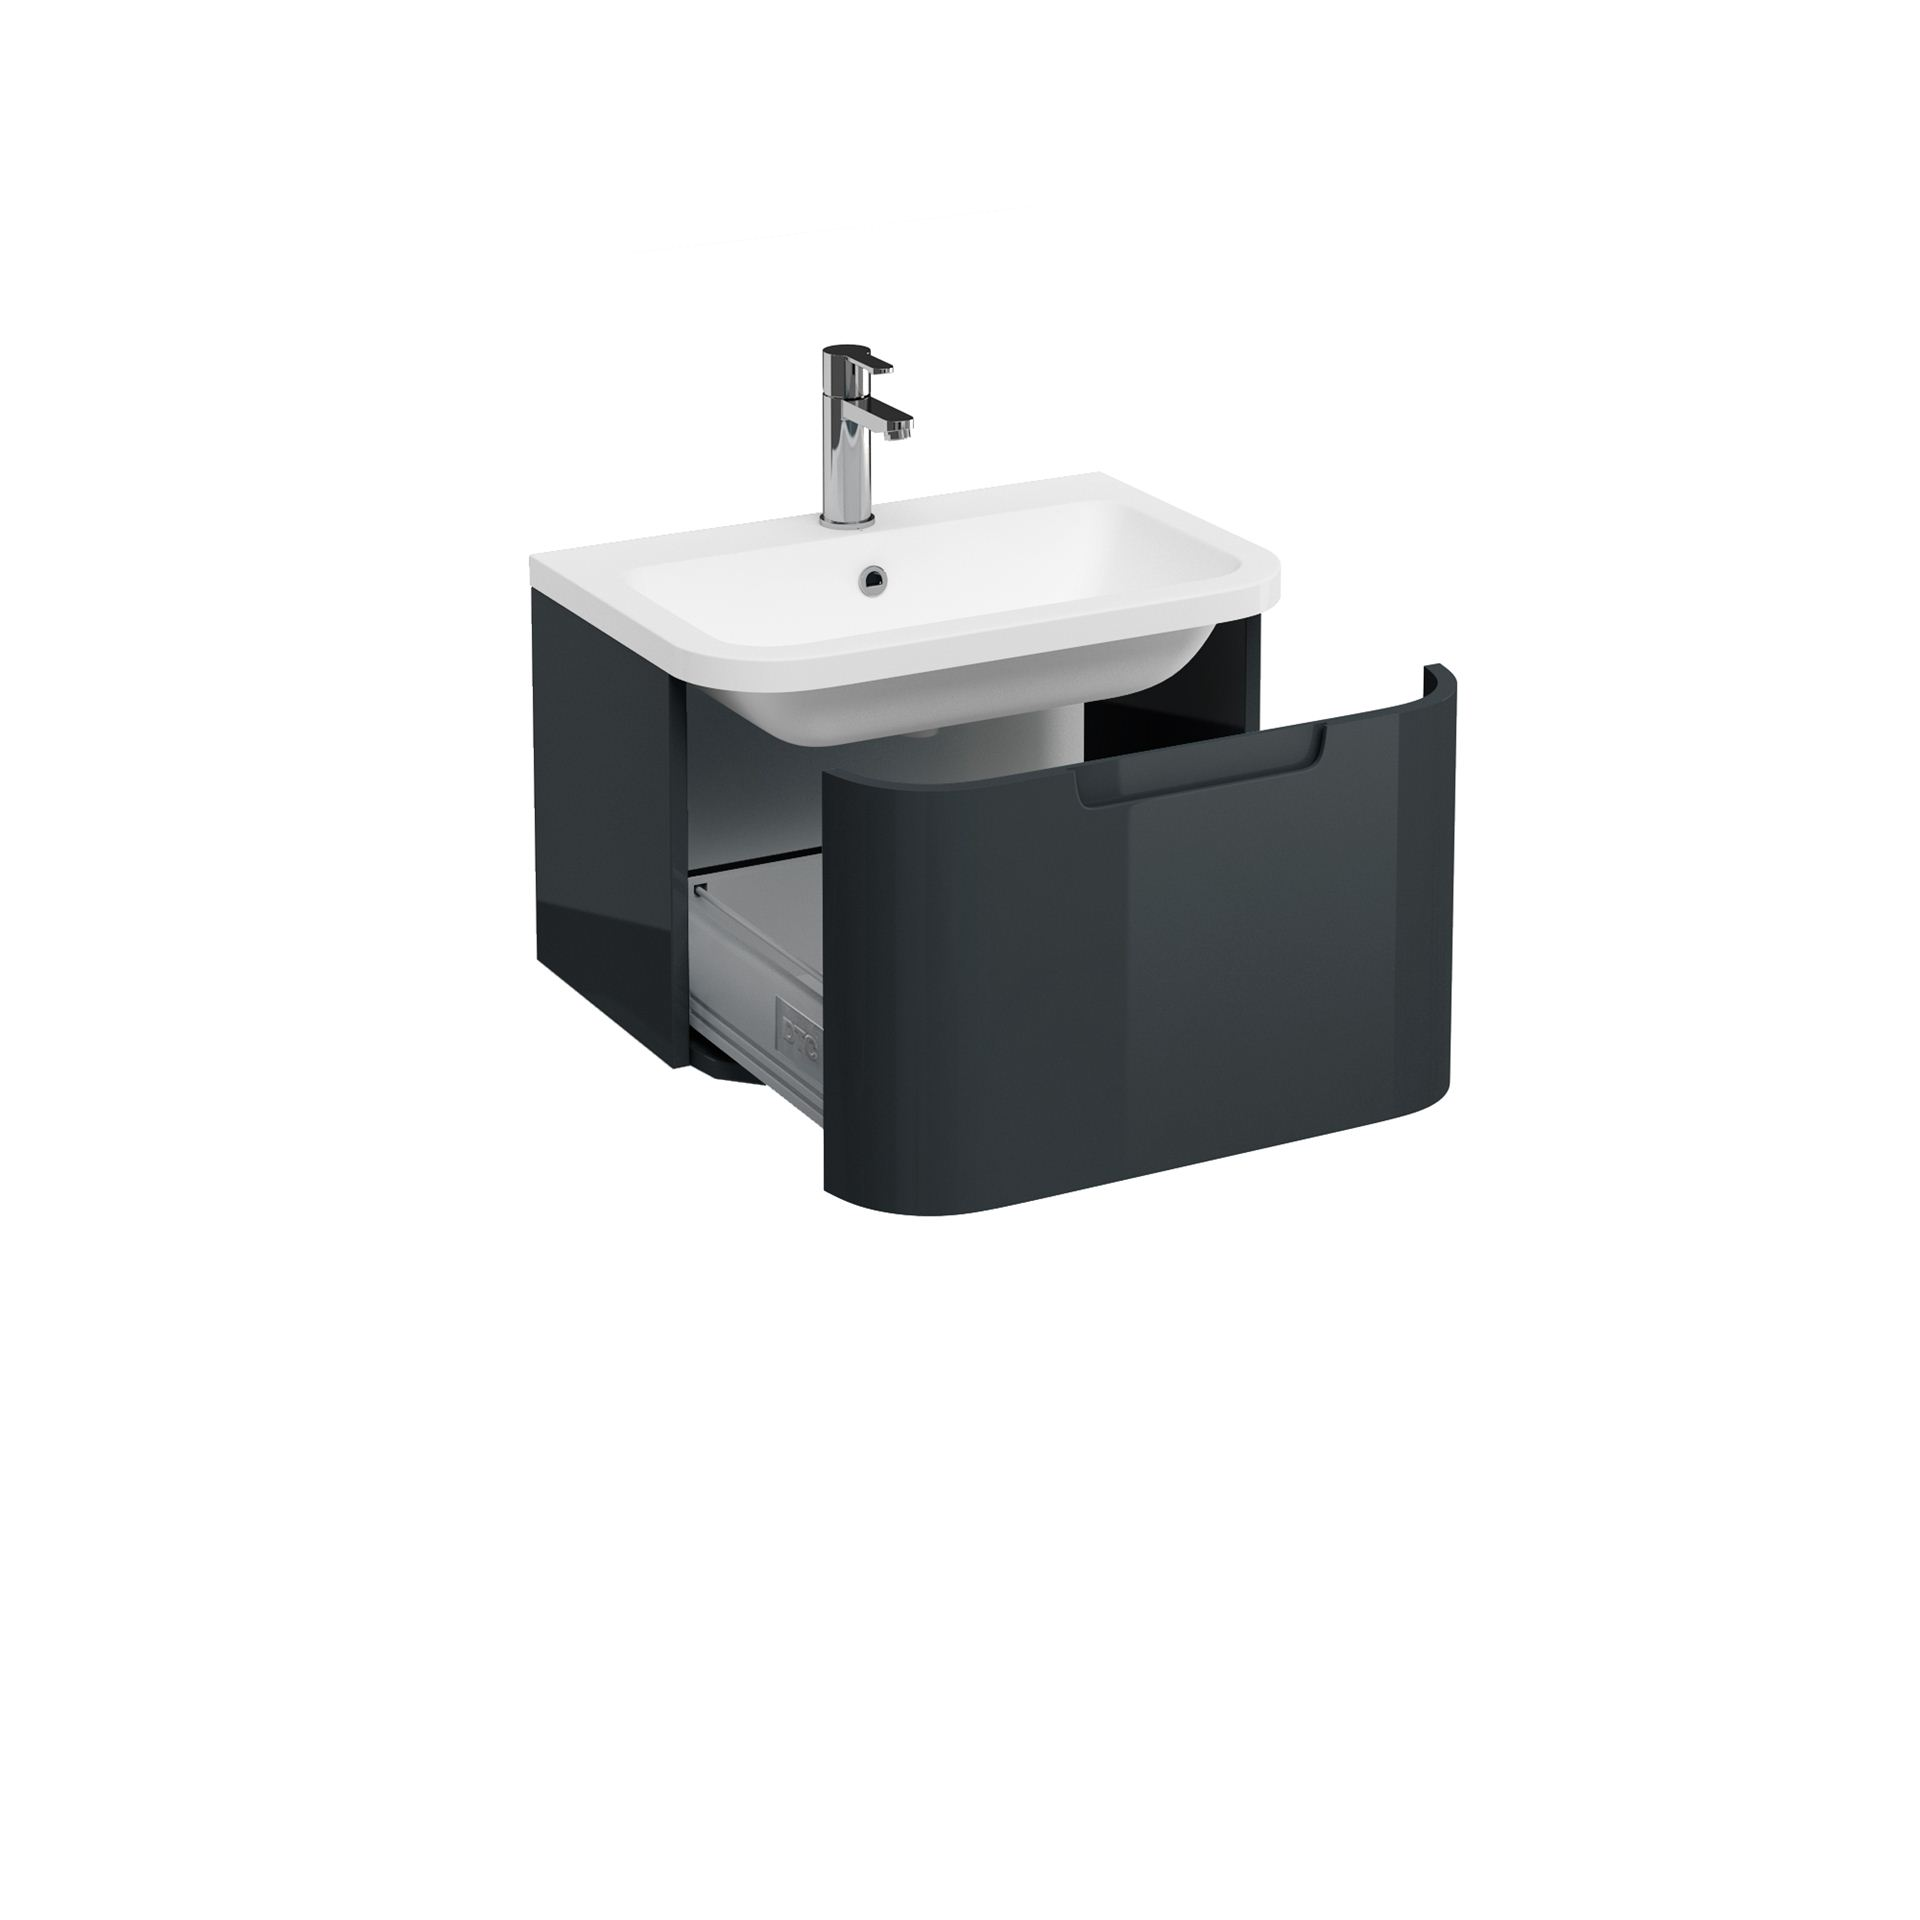 ... Wall Hung Vanity Unit with Compact 600 Quattrocast Basin - Black